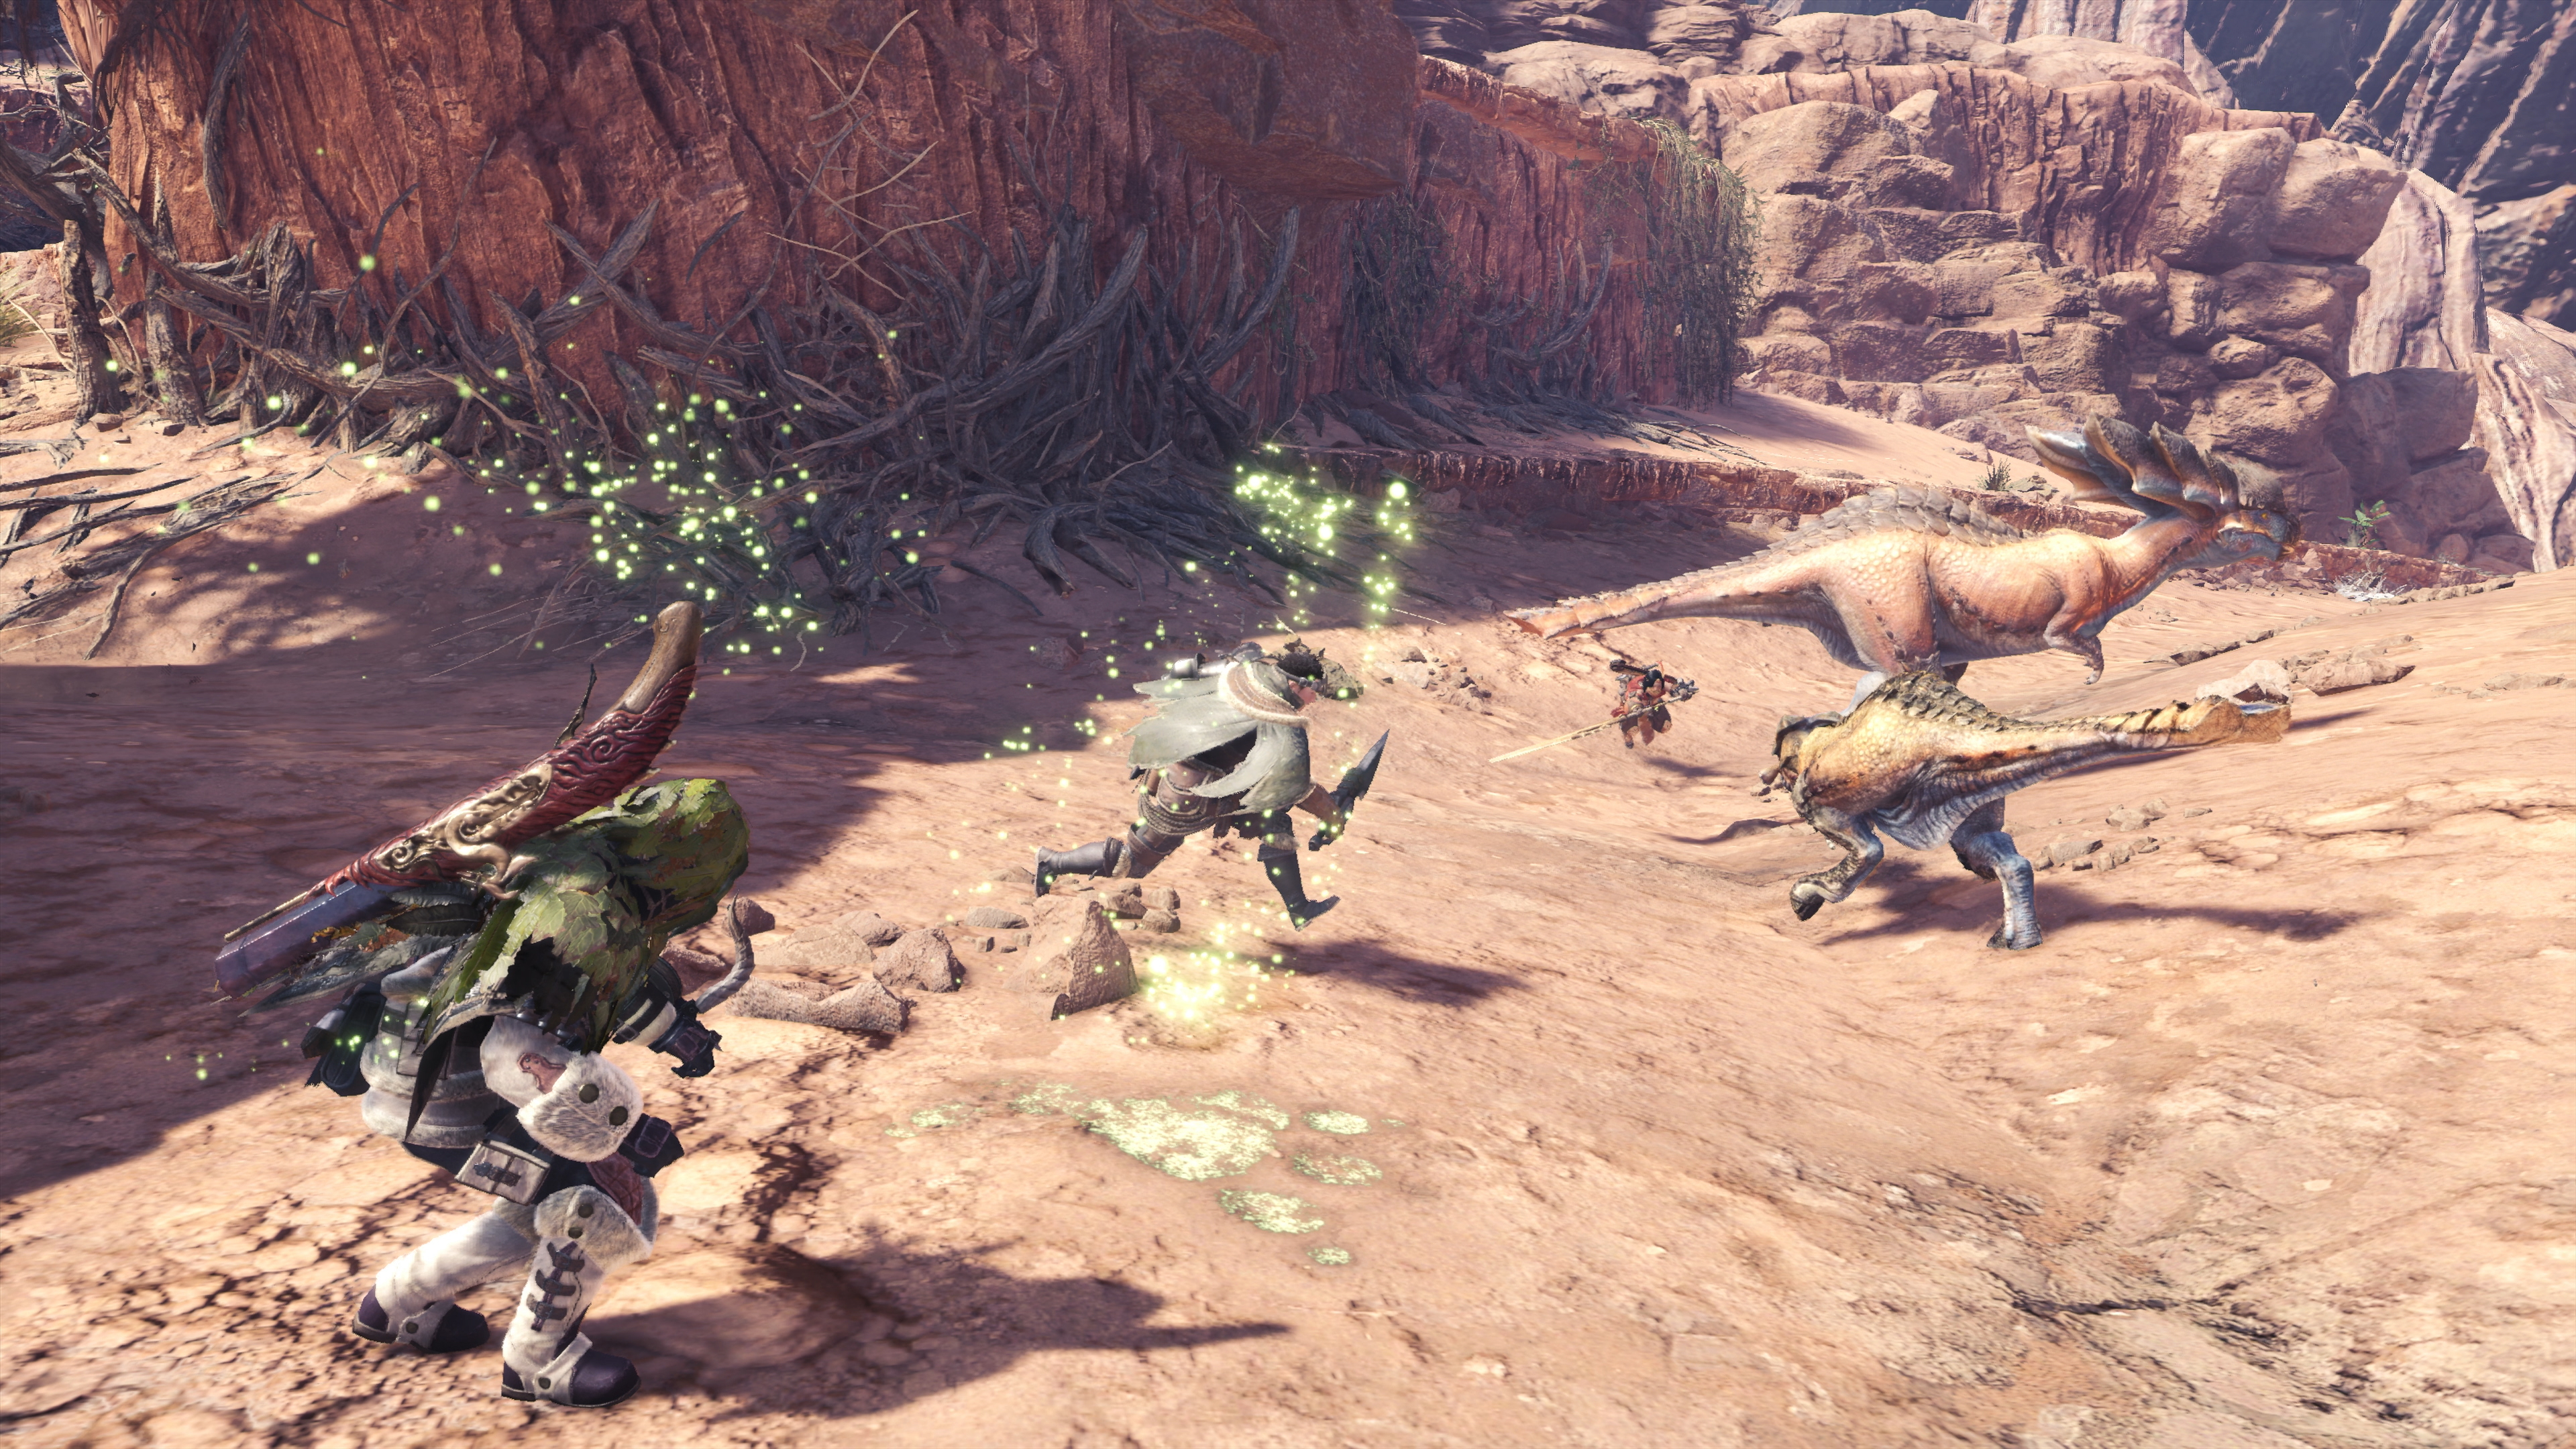 Monster Hunter: World prompts hardcore fans to take newbies under their wing